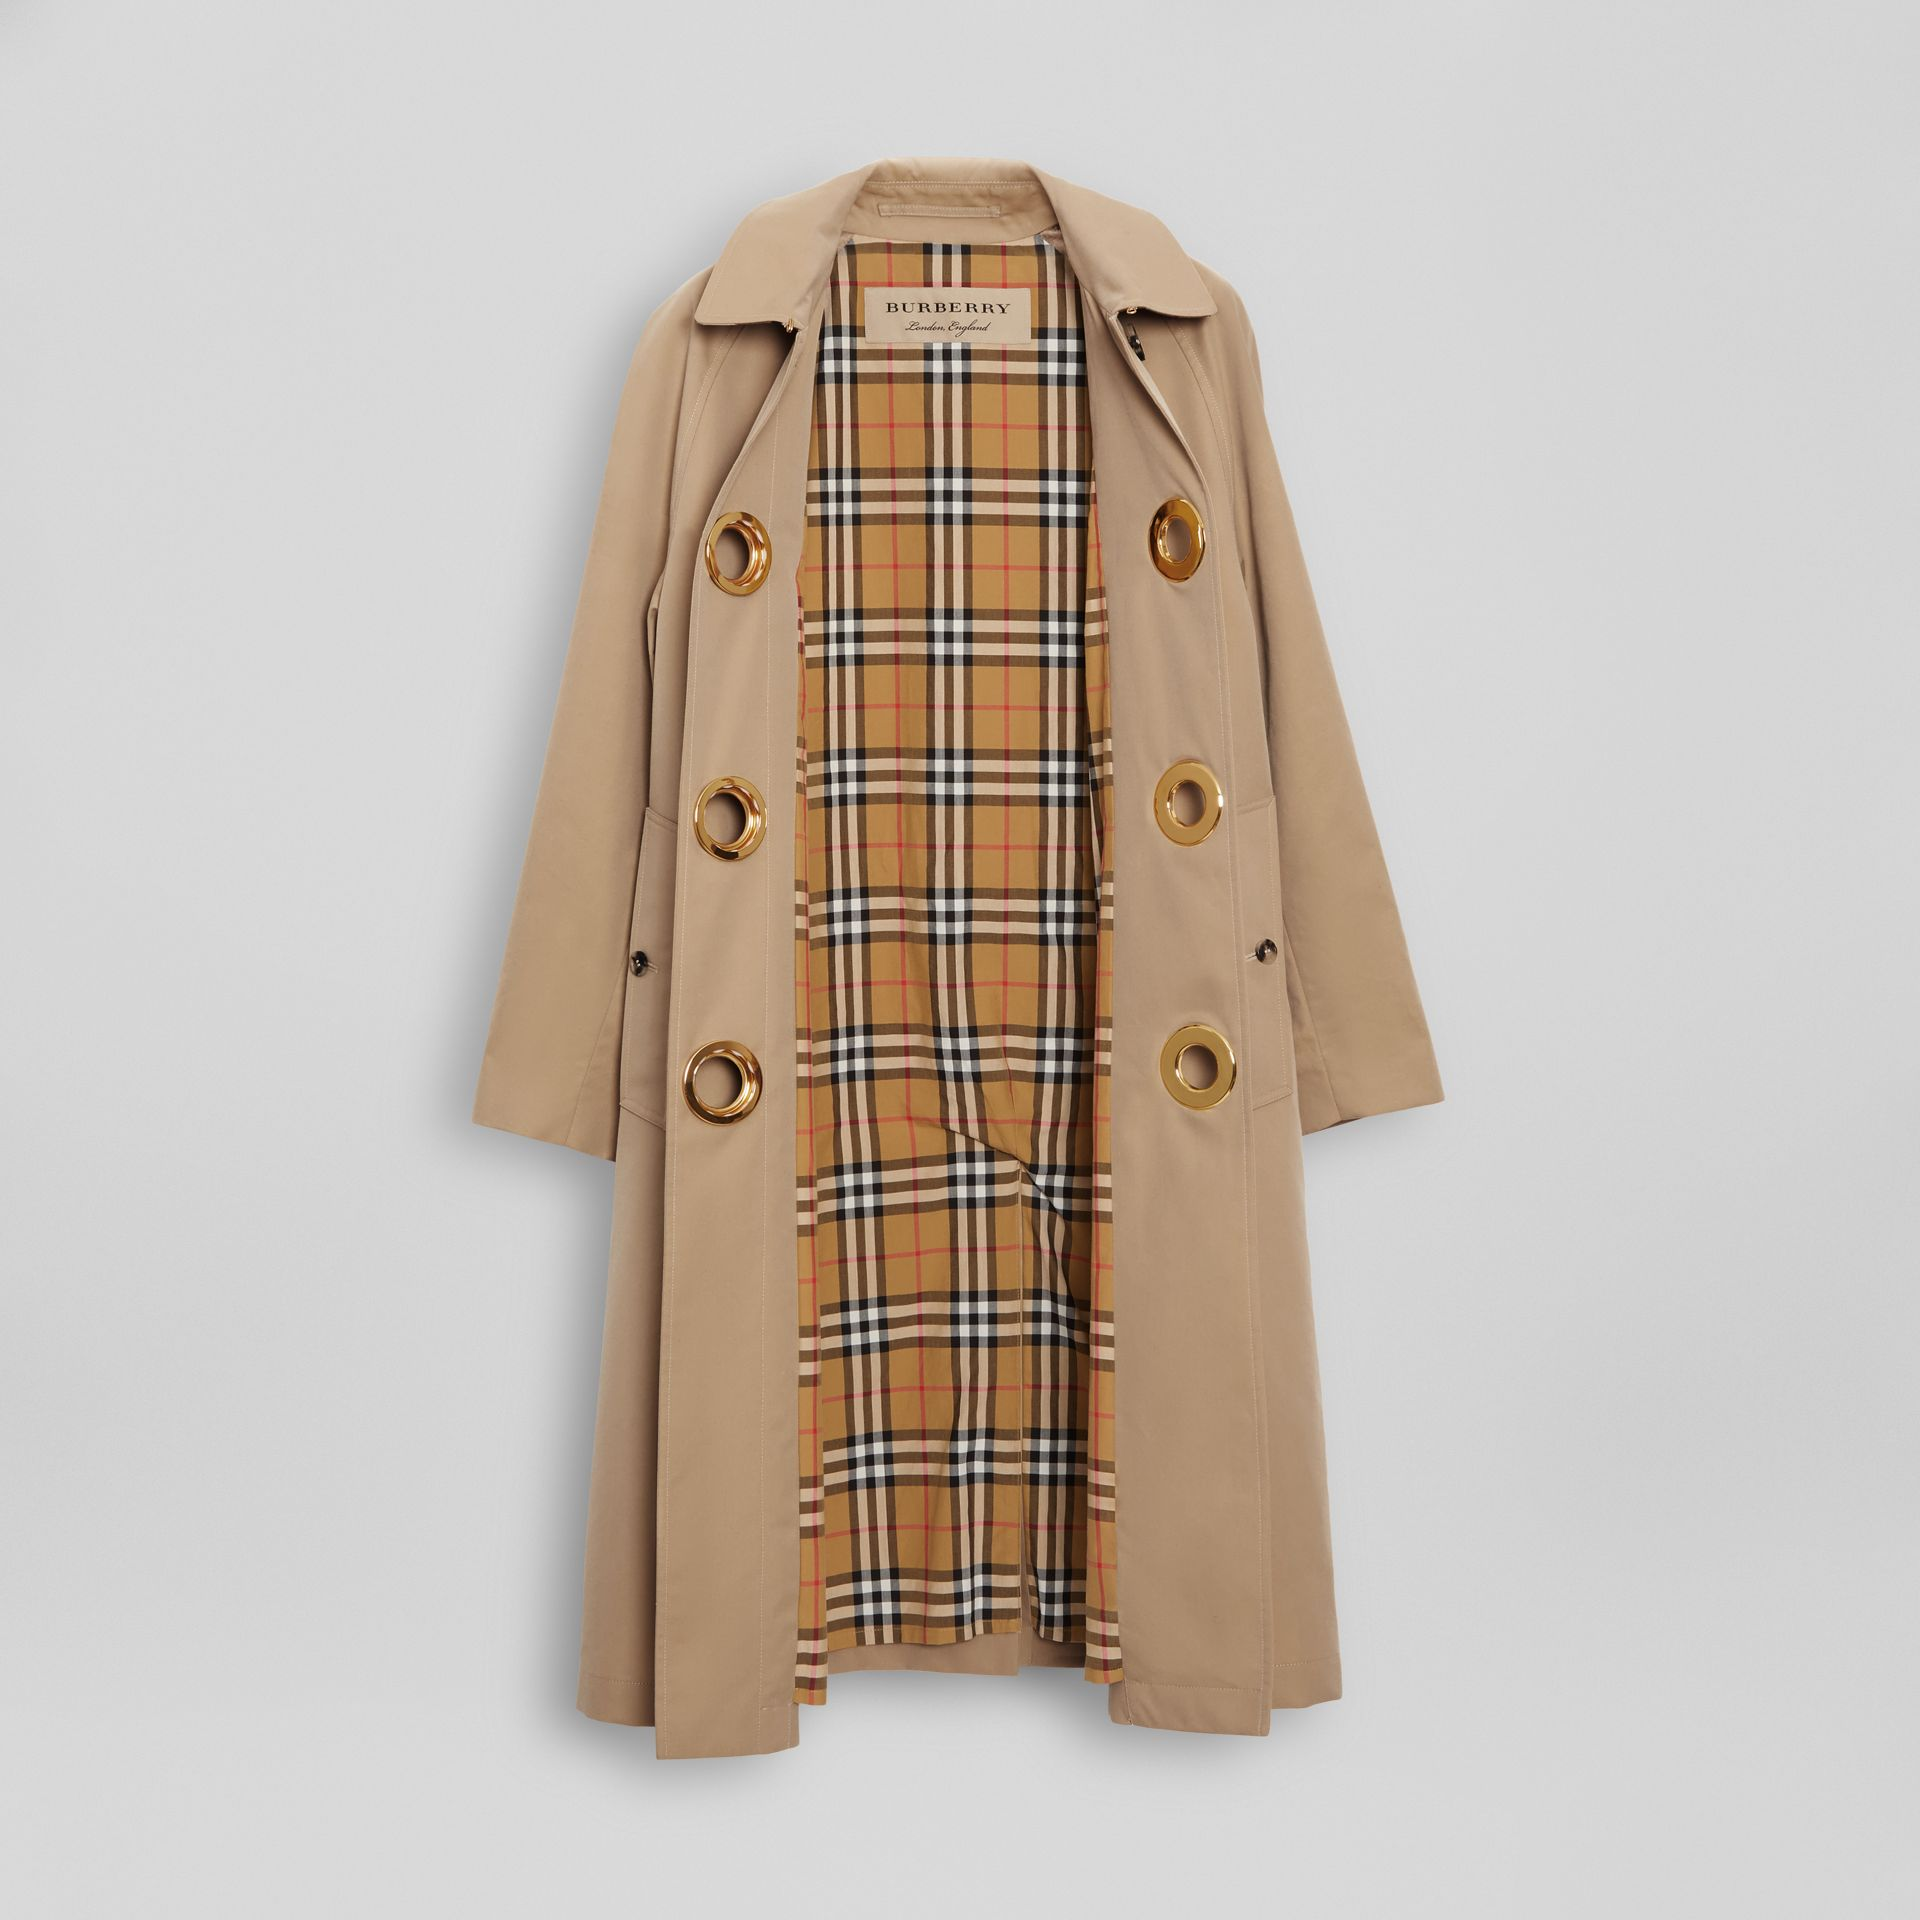 Grommet Detail Cotton Gabardine Car Coat in Honey - Women | Burberry - gallery image 7